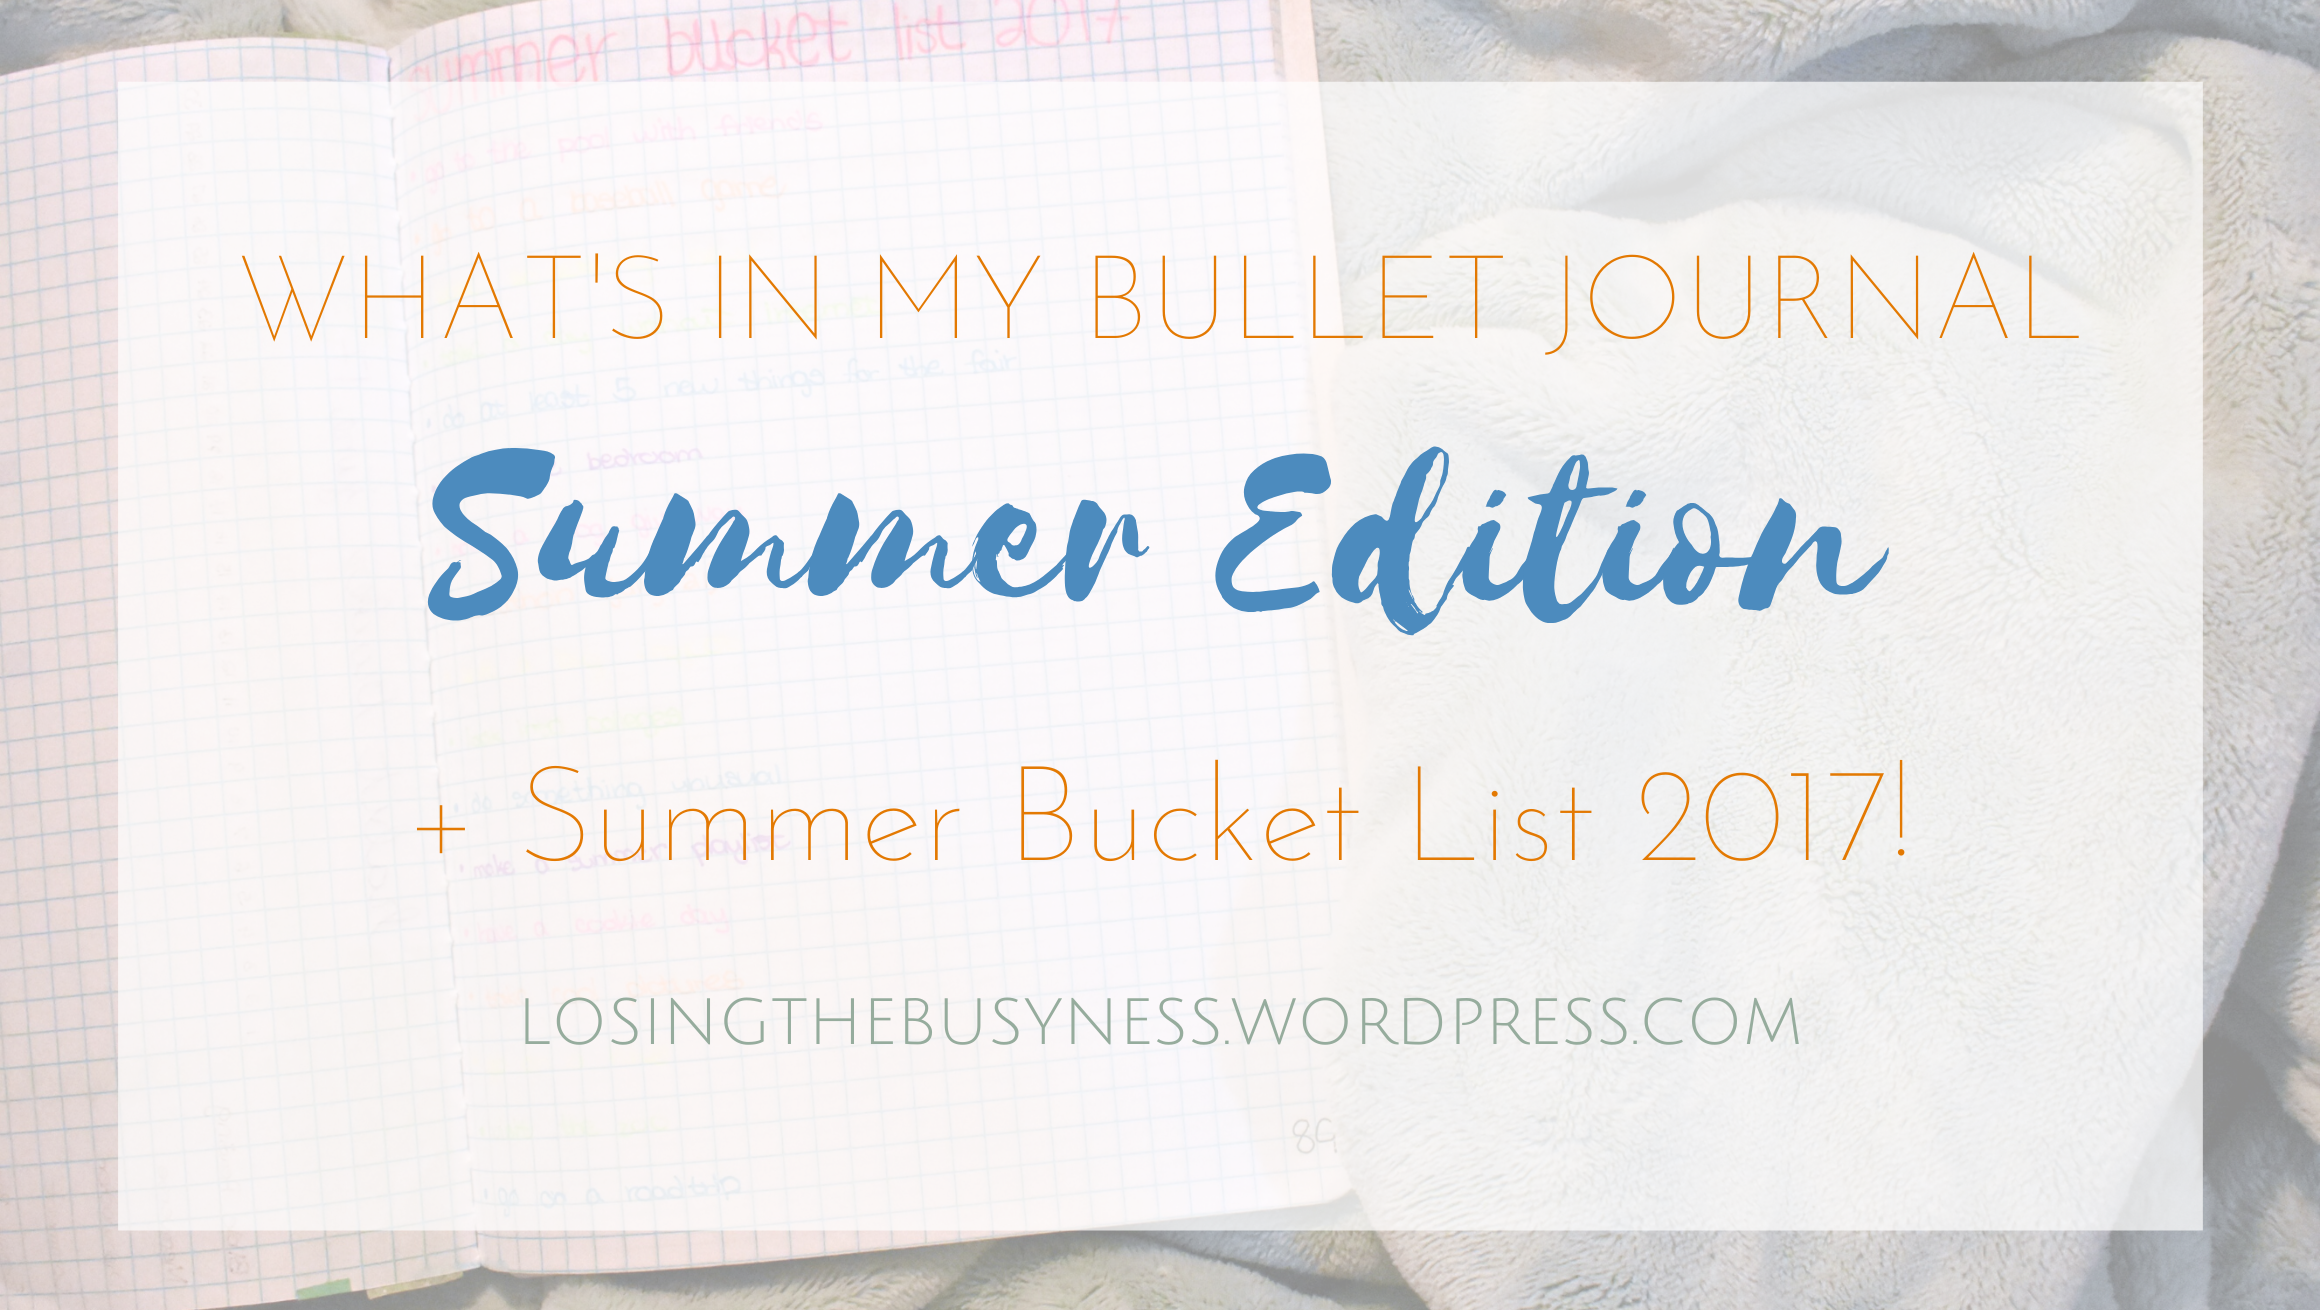 What S In My Bullet Journal Summer Edition What S On My Summer Bucket List 2017 Bullet Journaling Losing The Busyness